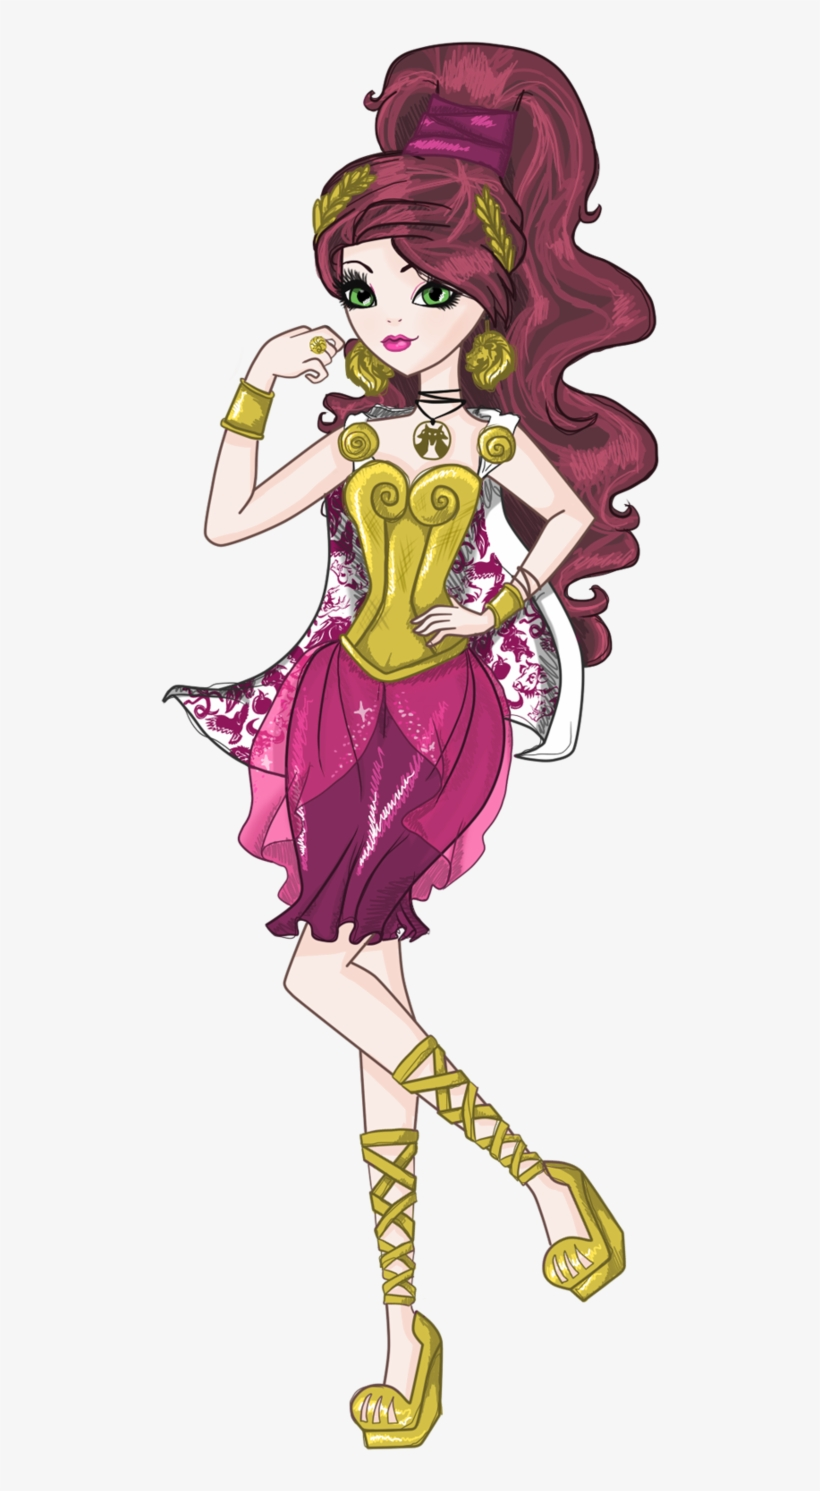 Daughter Of Hercules Ever After High Characters Full Body Png Image Transparent Png Free Download On Seekpng